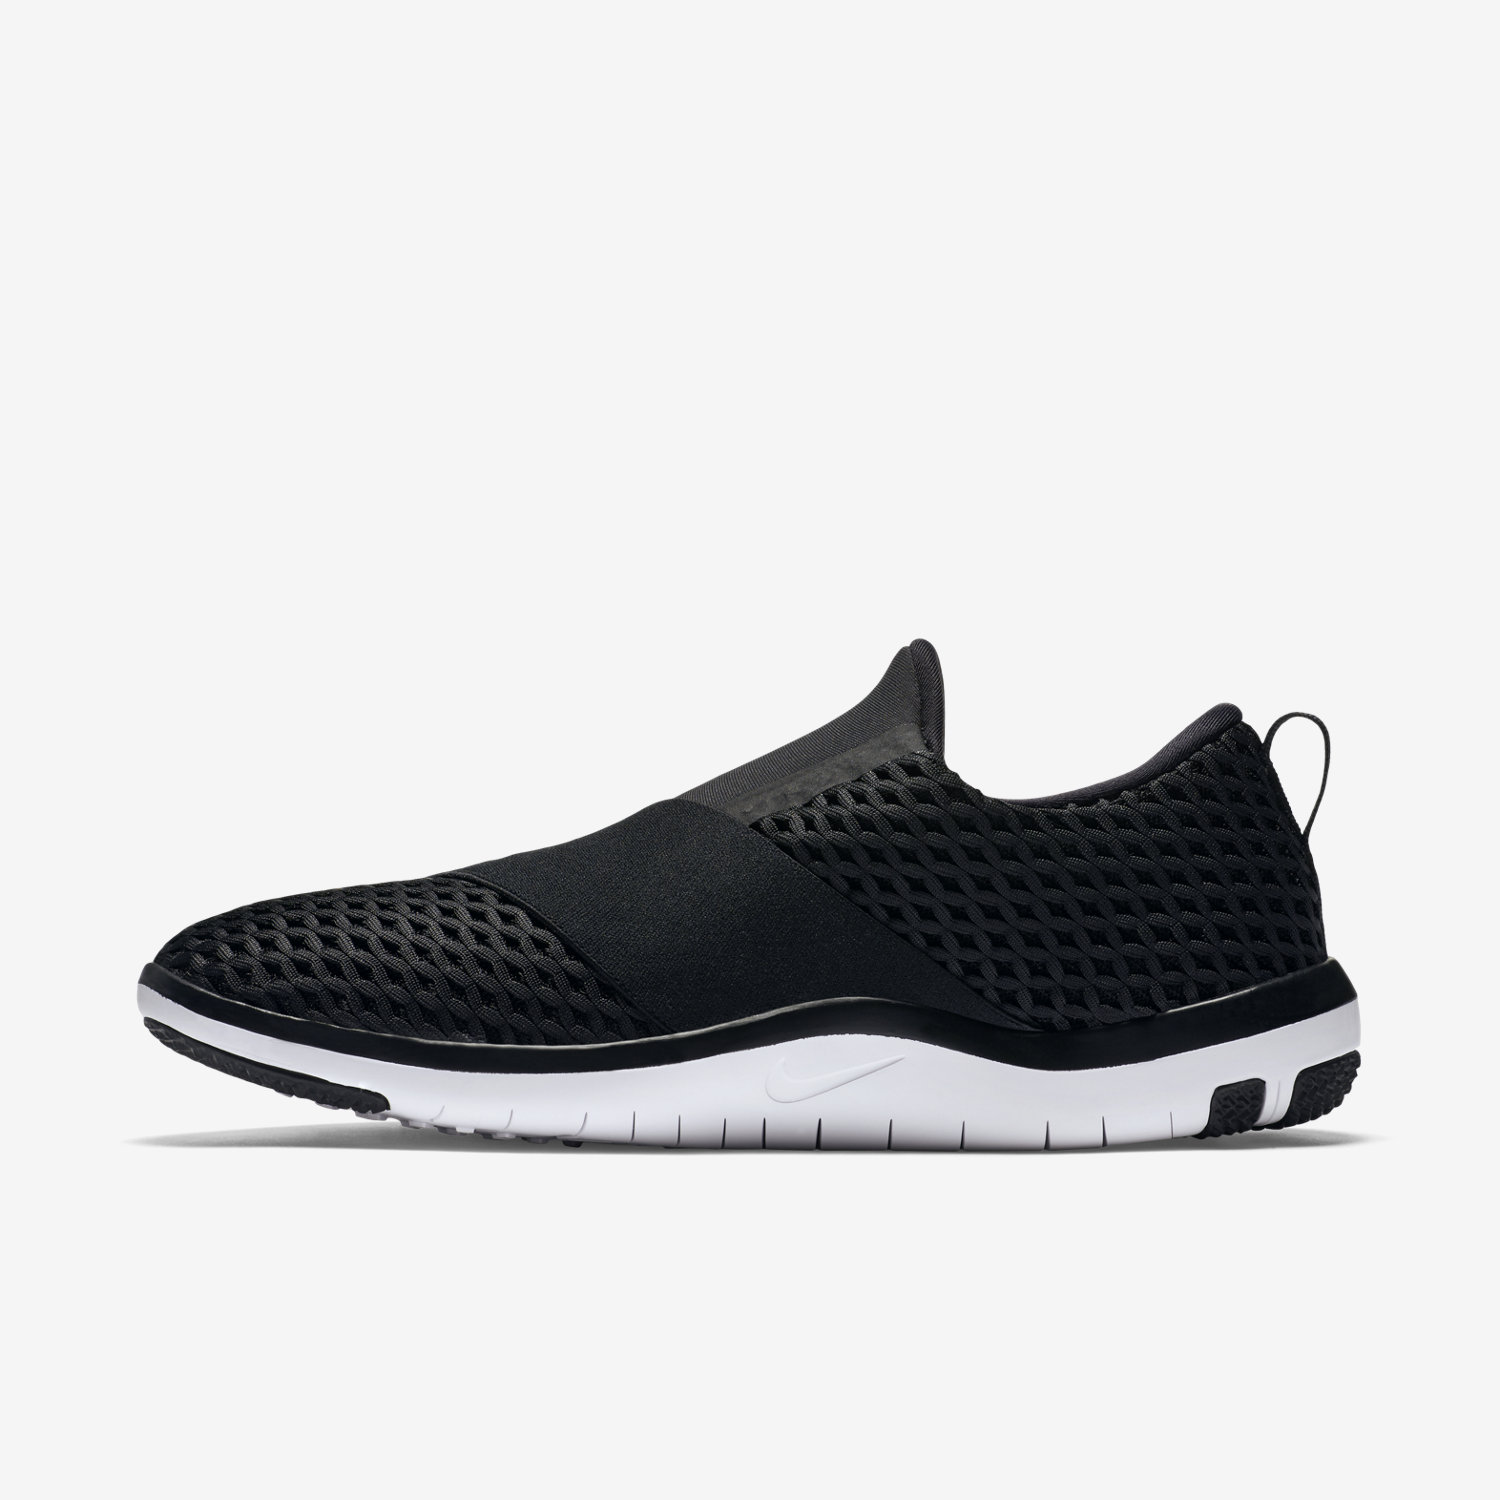 low priced b1a4b 03aee ... france nike free connect alex morgan nike free connect ltd . 4af60 493cd